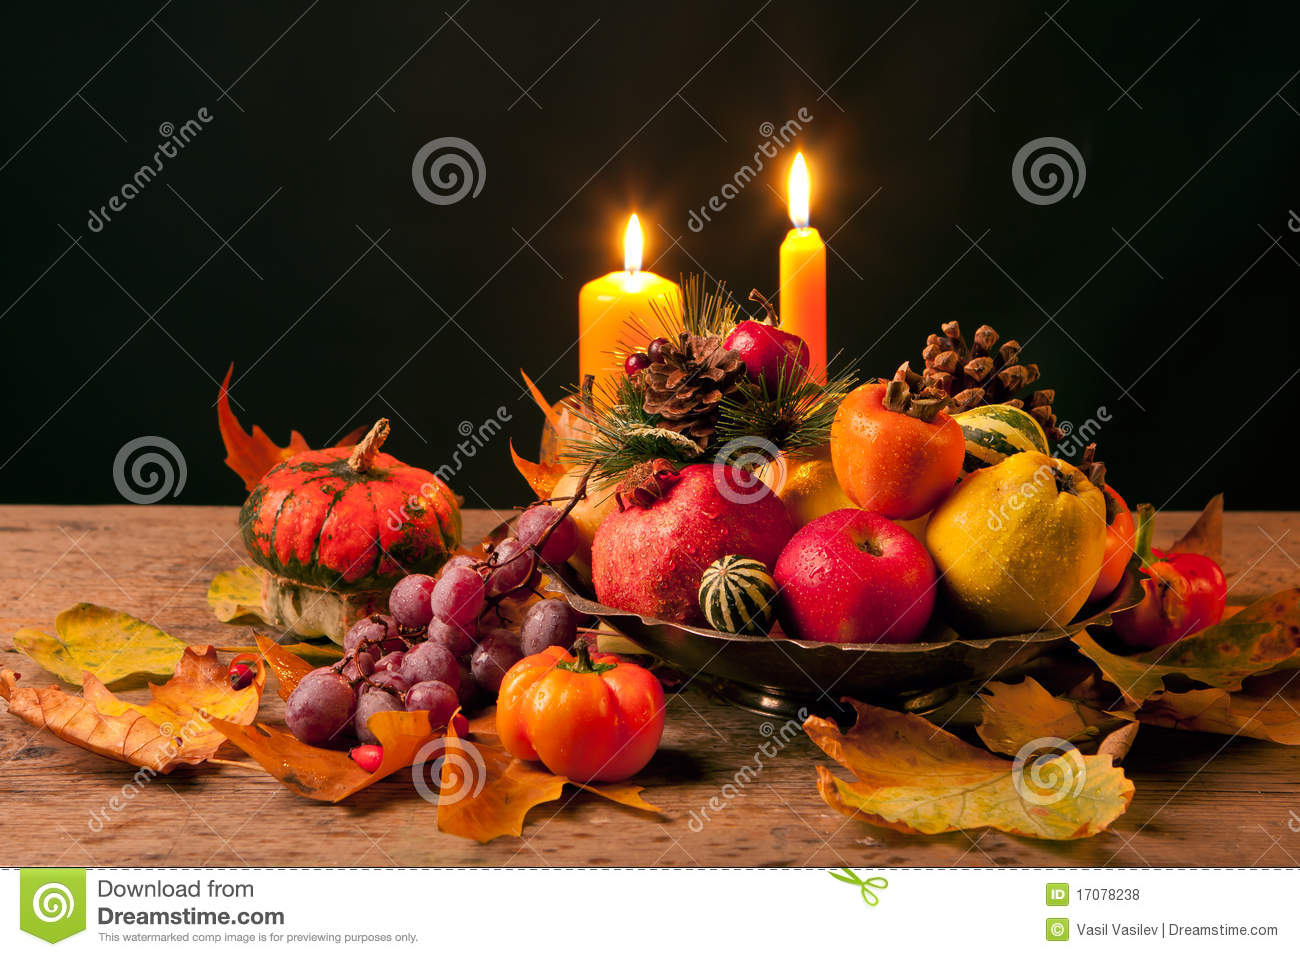 Fall Pumpkin Wallpaper Desktop Thanksgiving Still Life Stock Photo Image Of Candle